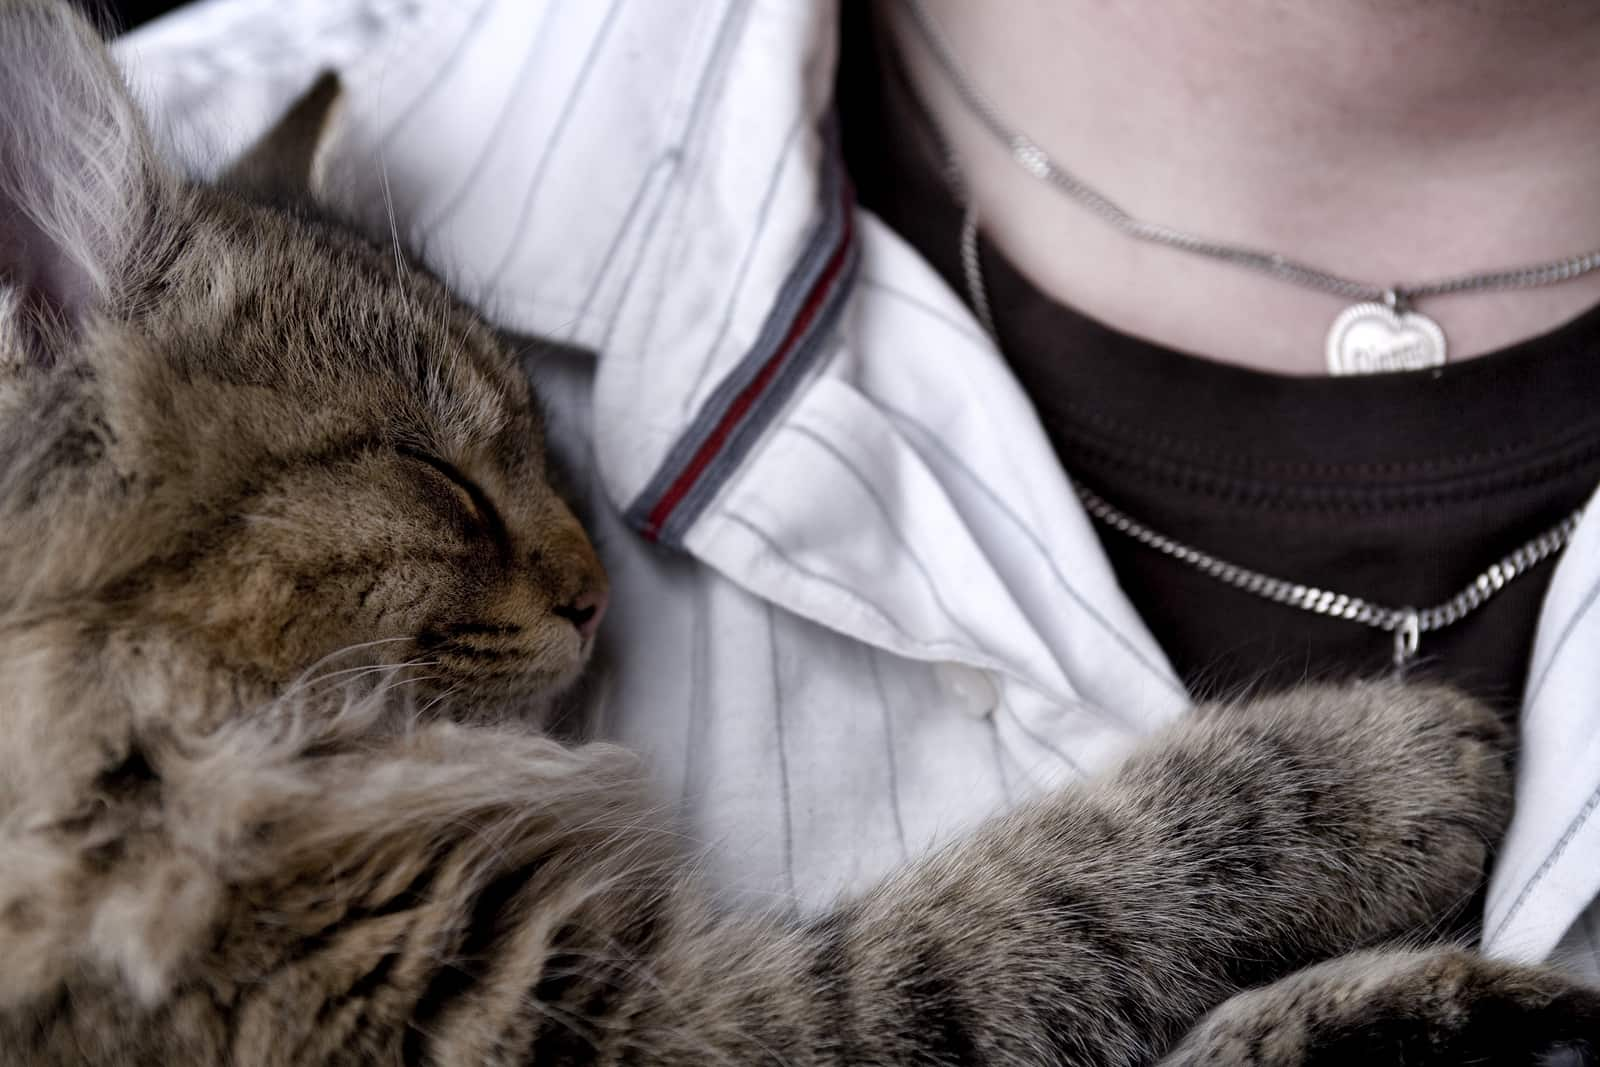 Cat snuggled up on human's chest.